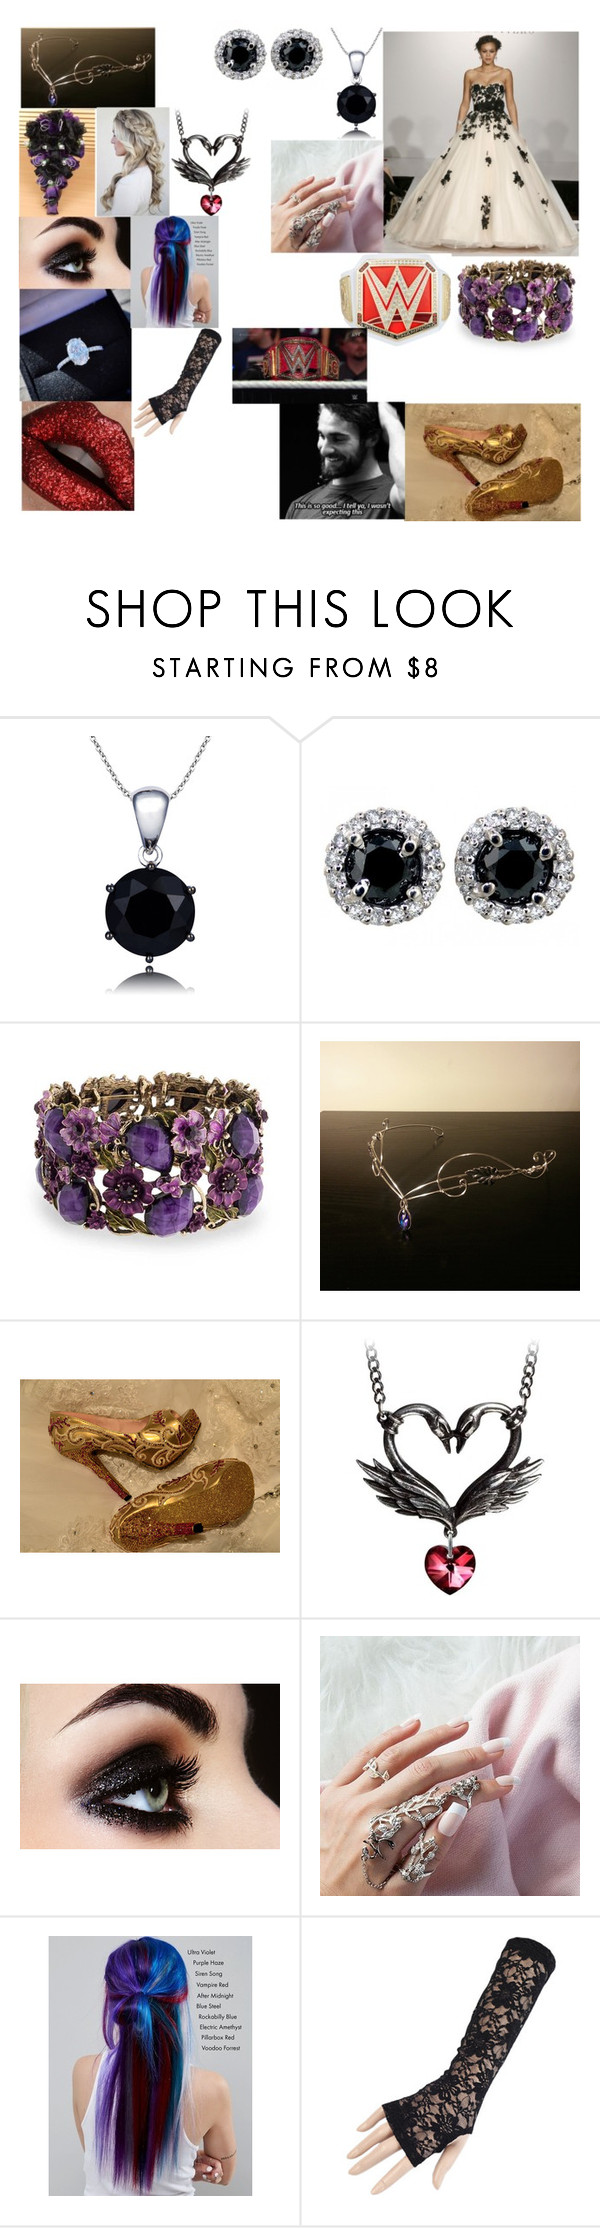 """""""prp"""" by ashley-purdys-girl-forever ❤ liked on Polyvore featuring Bling Jewelry, Black Swan, Manic Panic NYC and WWE"""